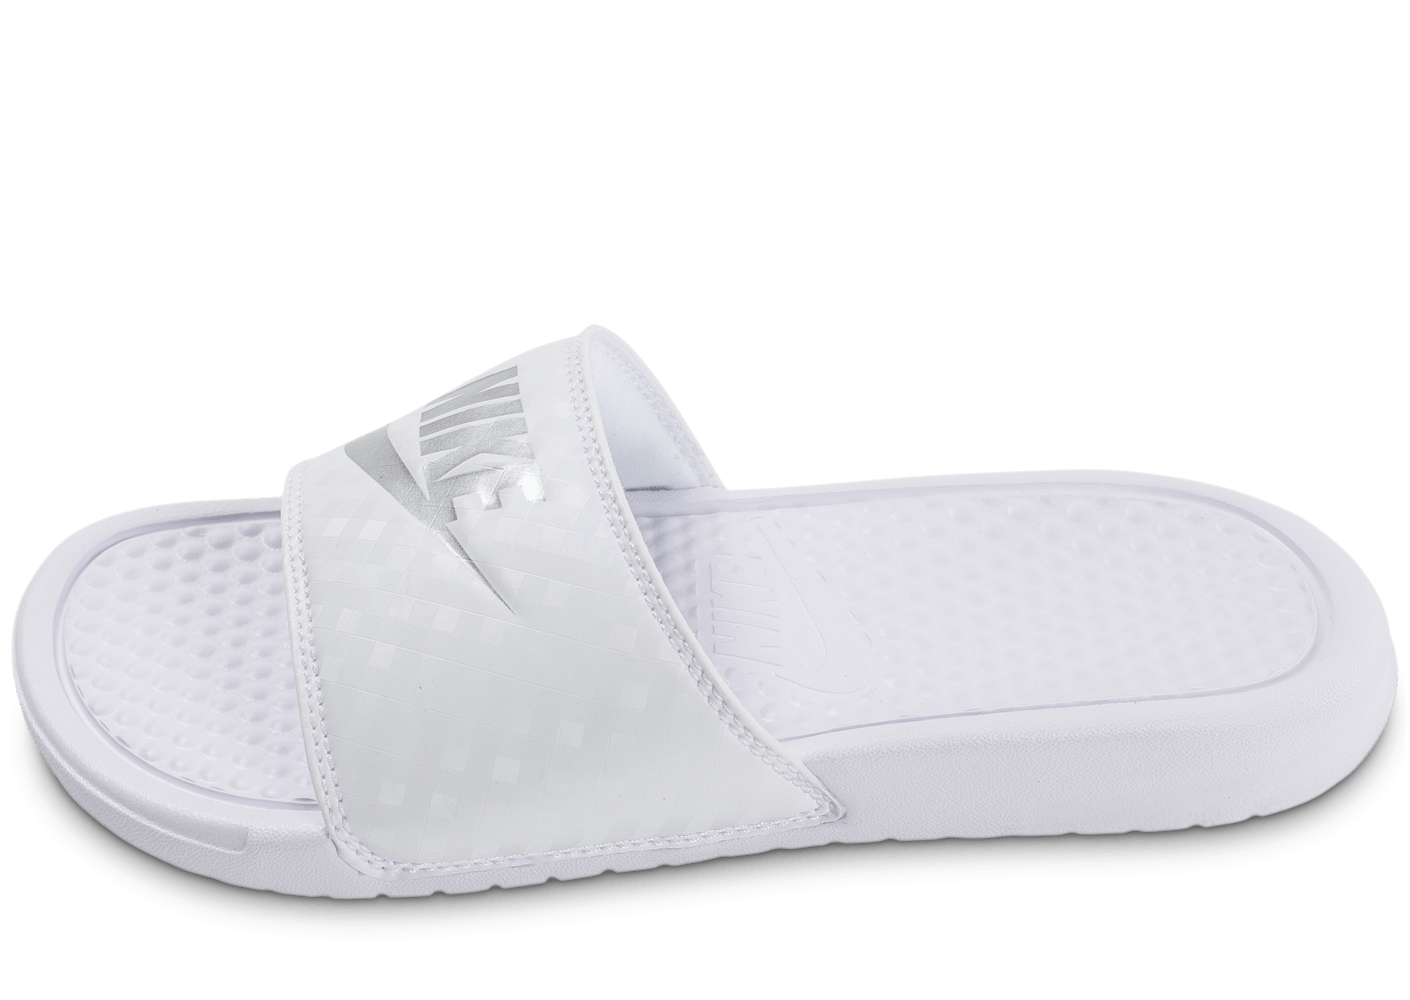 purchase cheap 06b04 ed88b Nike Benassi blanche et argent - Chaussures Chaussures - Chausport